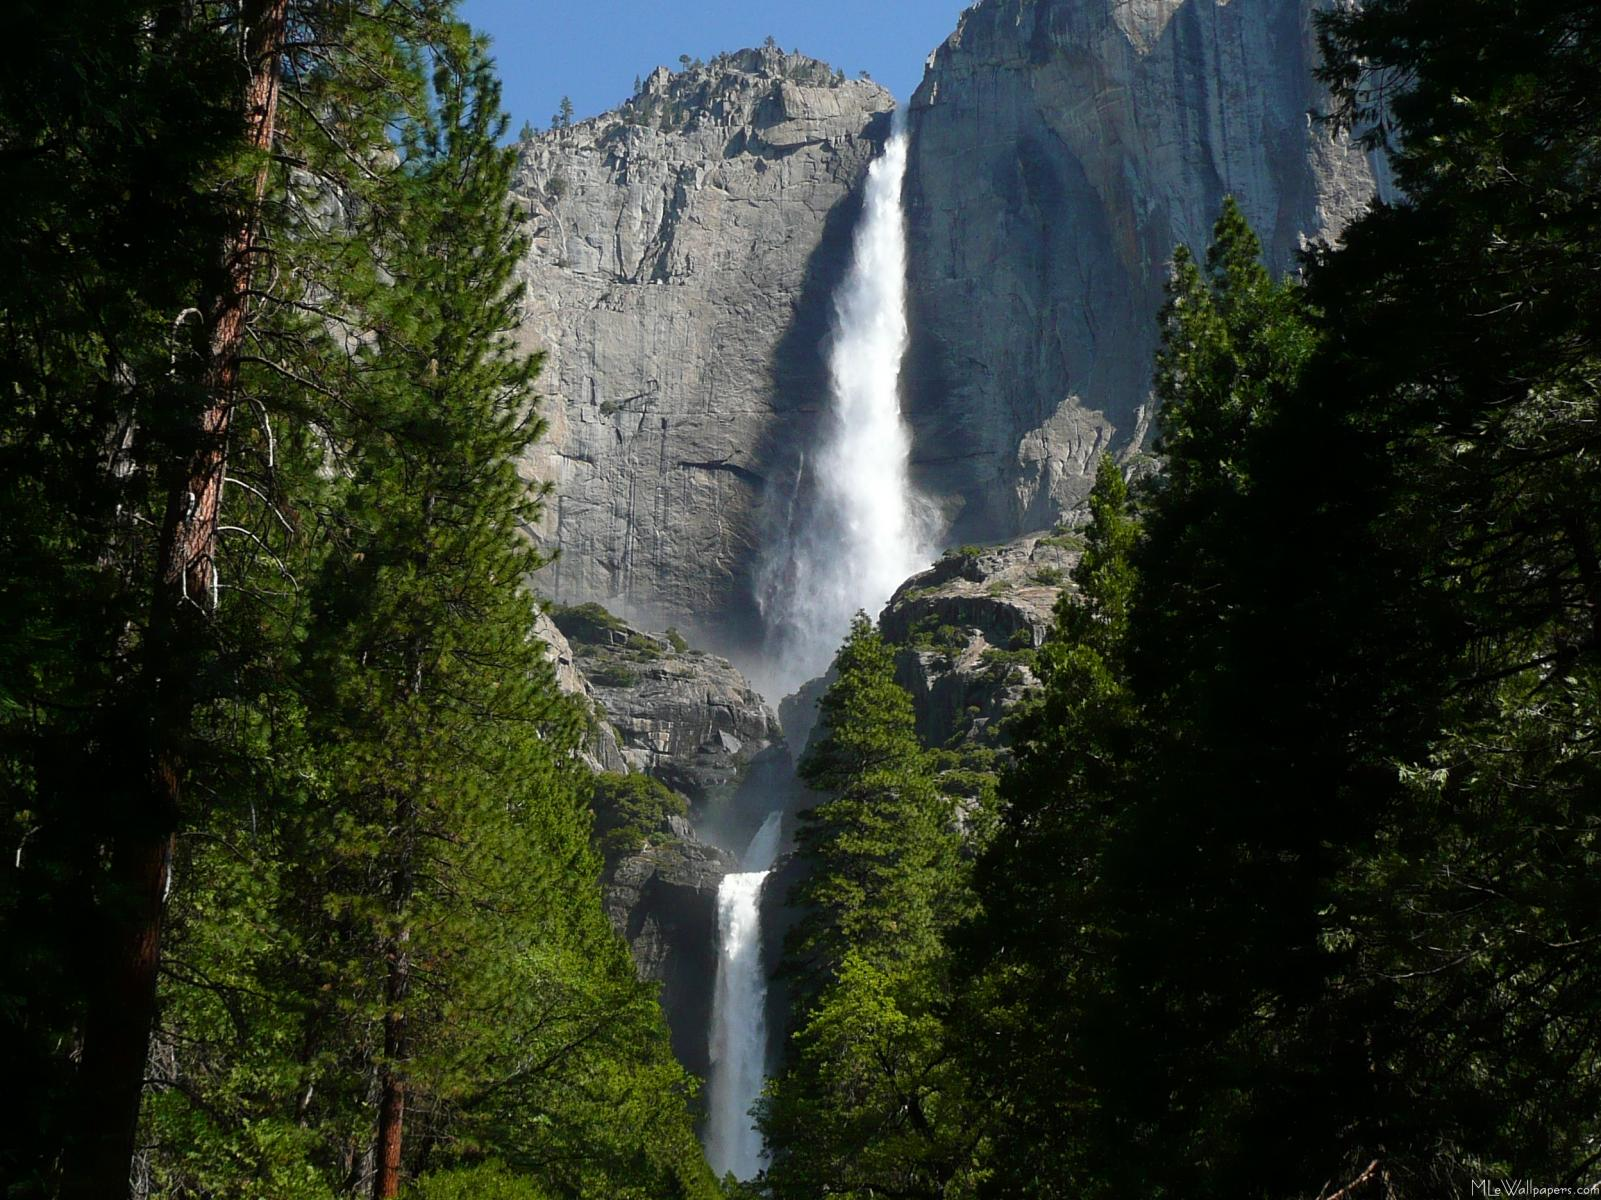 mlewallpapers - yosemite falls ii